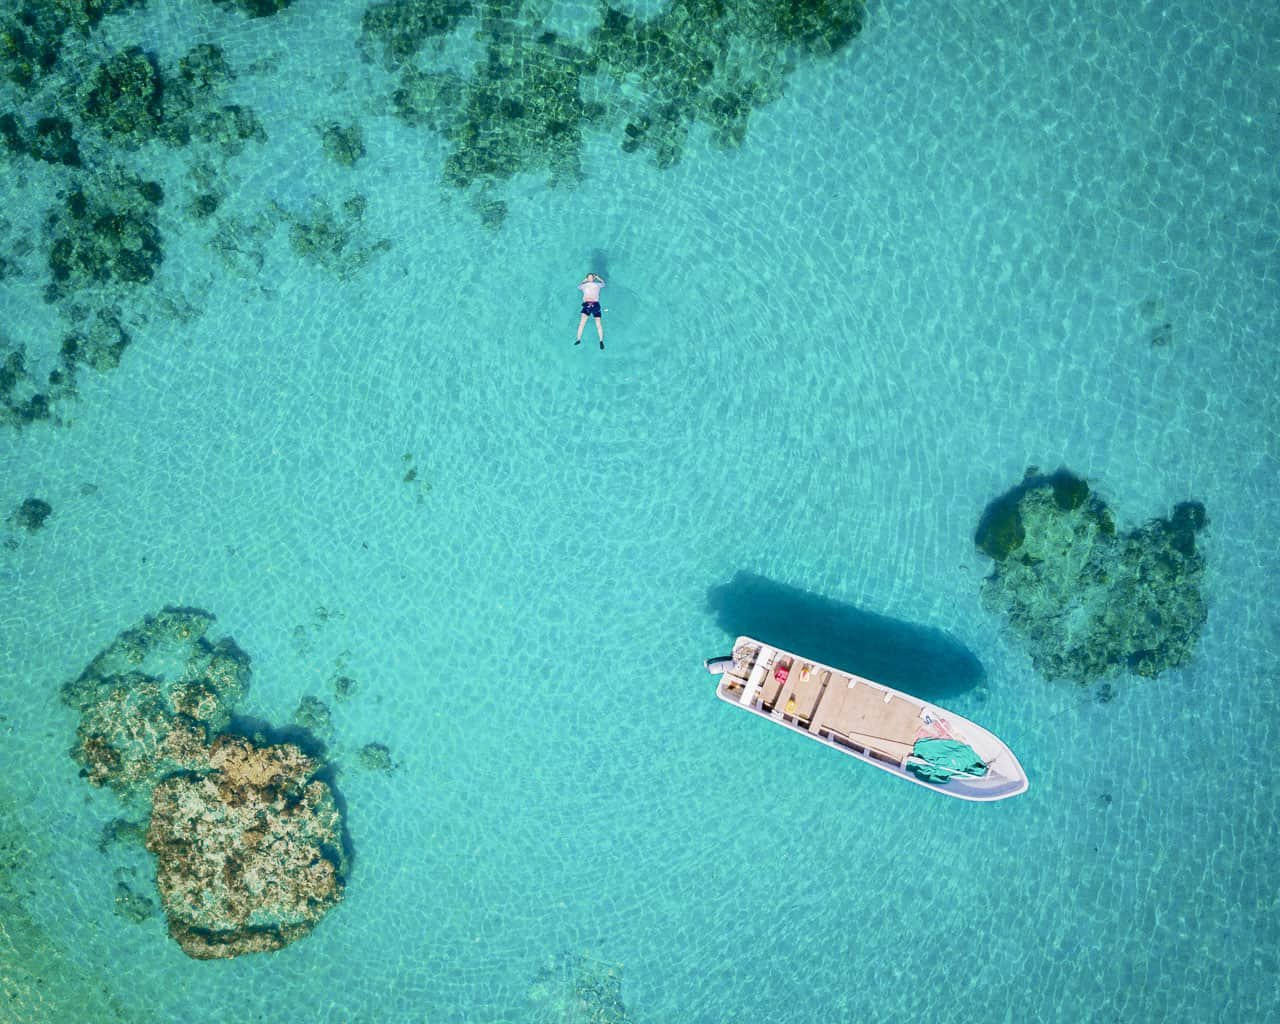 12 Things to do in Fiji - The Ultimate South Pacific Dream Trip